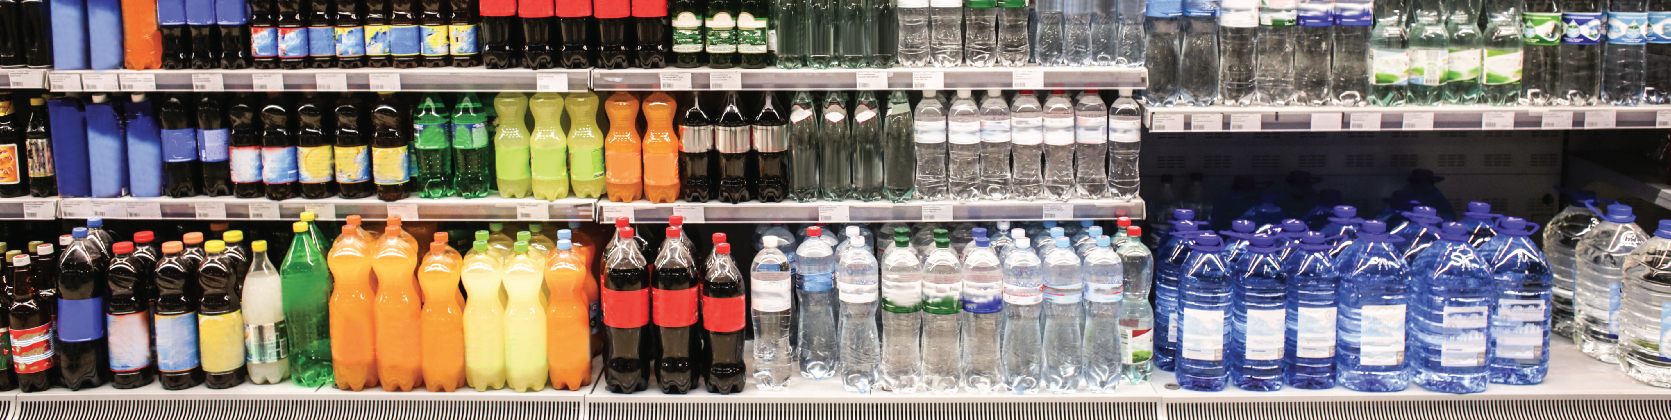 Walk In Refrigeration for Convenience Stores